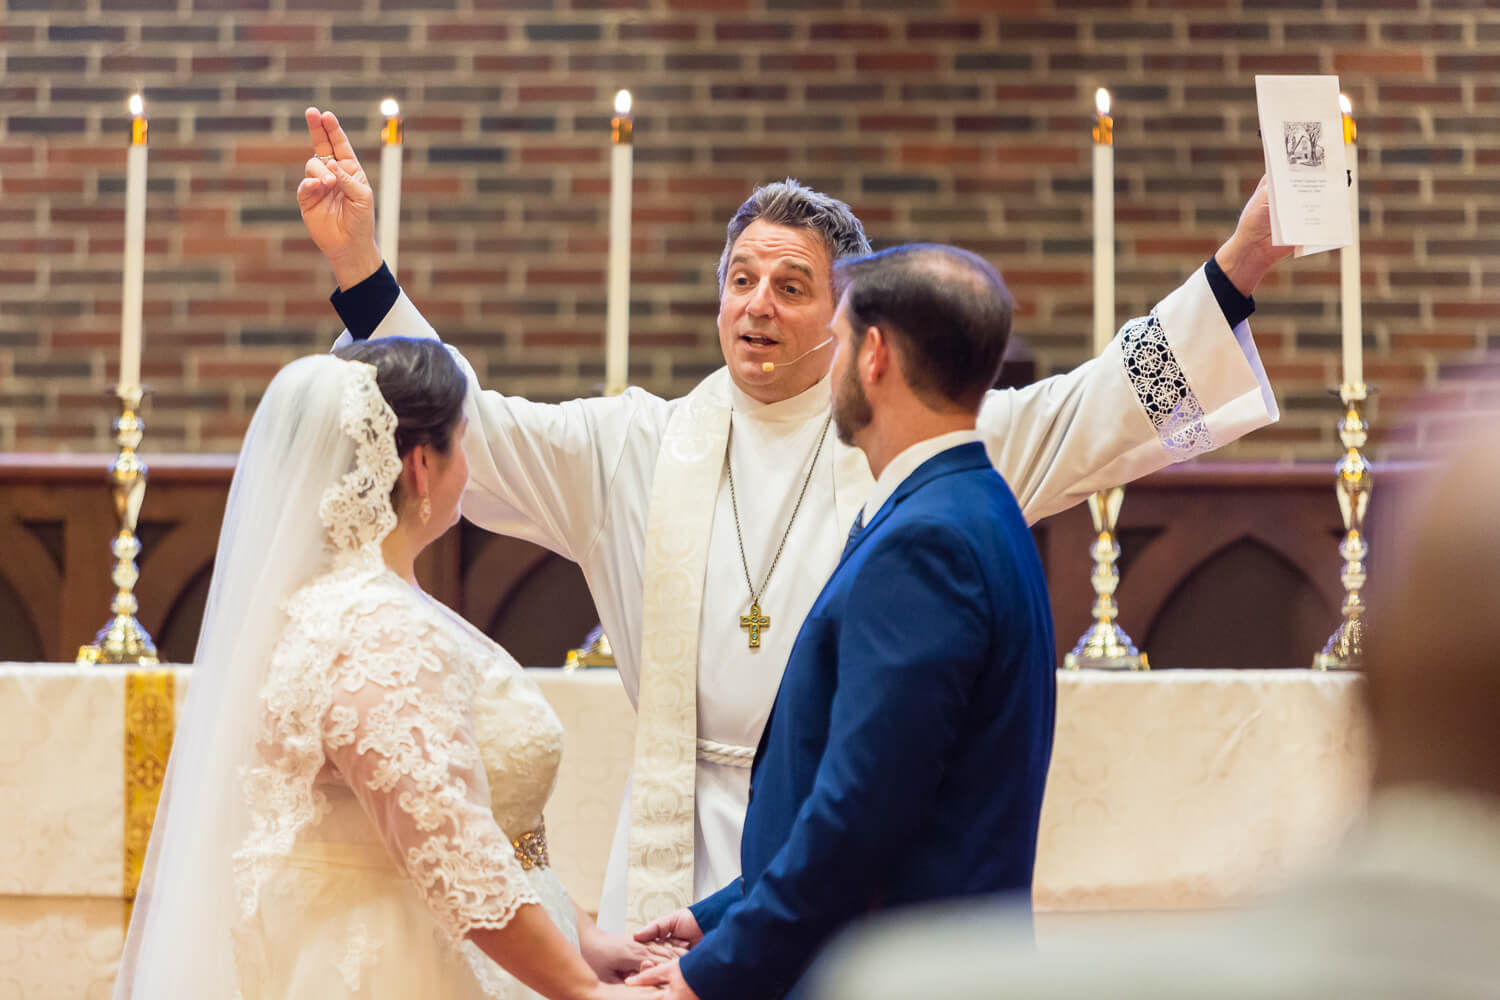 St. Michael's Episcopal Church wedding photos